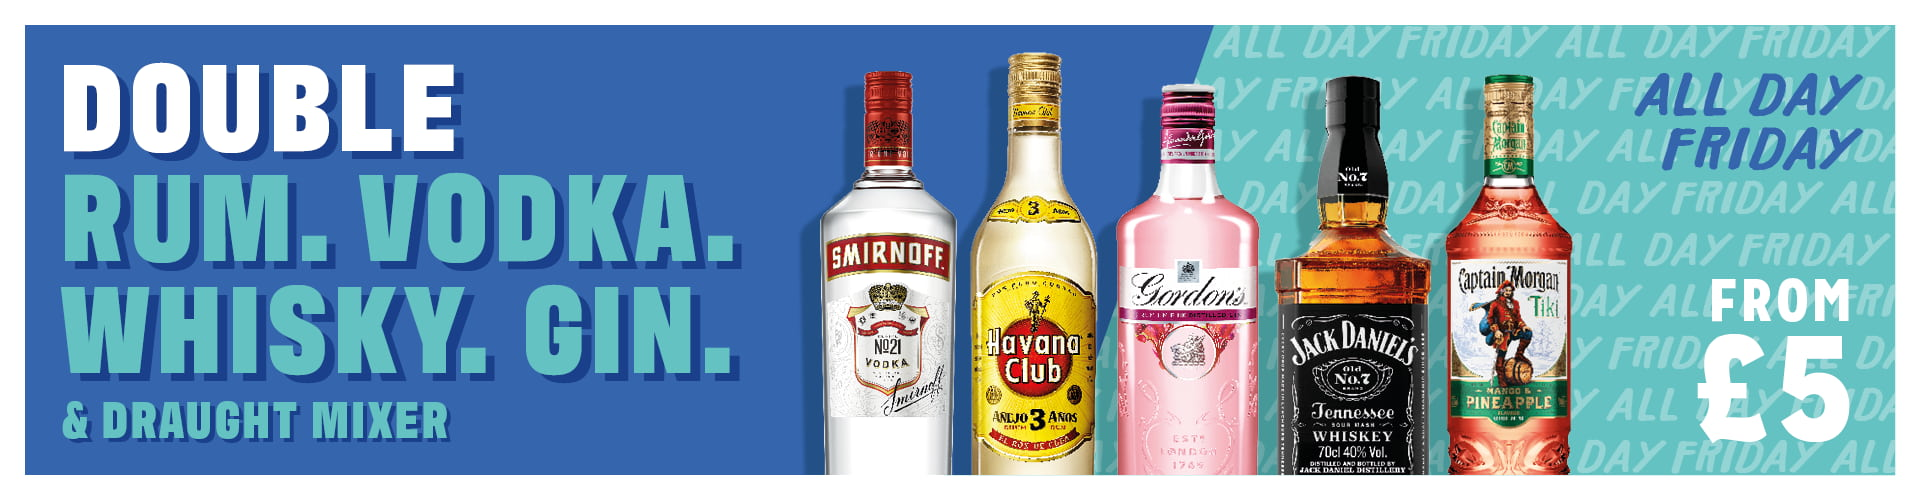 Double rum, vodka, whisky or gin and mixer for just £5. Available all day Friday.